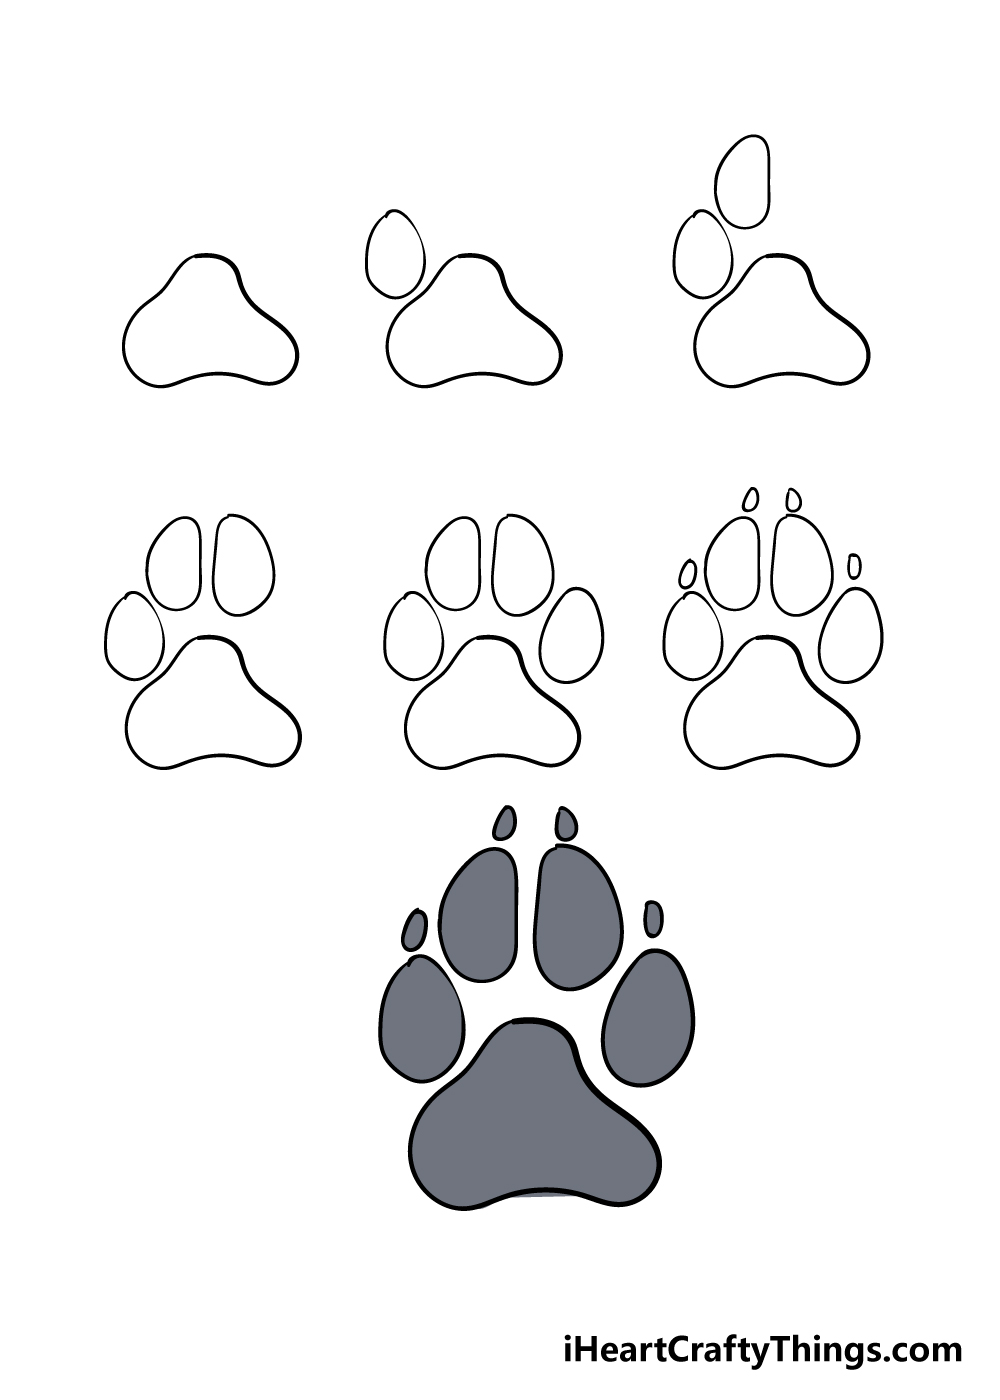 how to draw dog paw in 7 steps